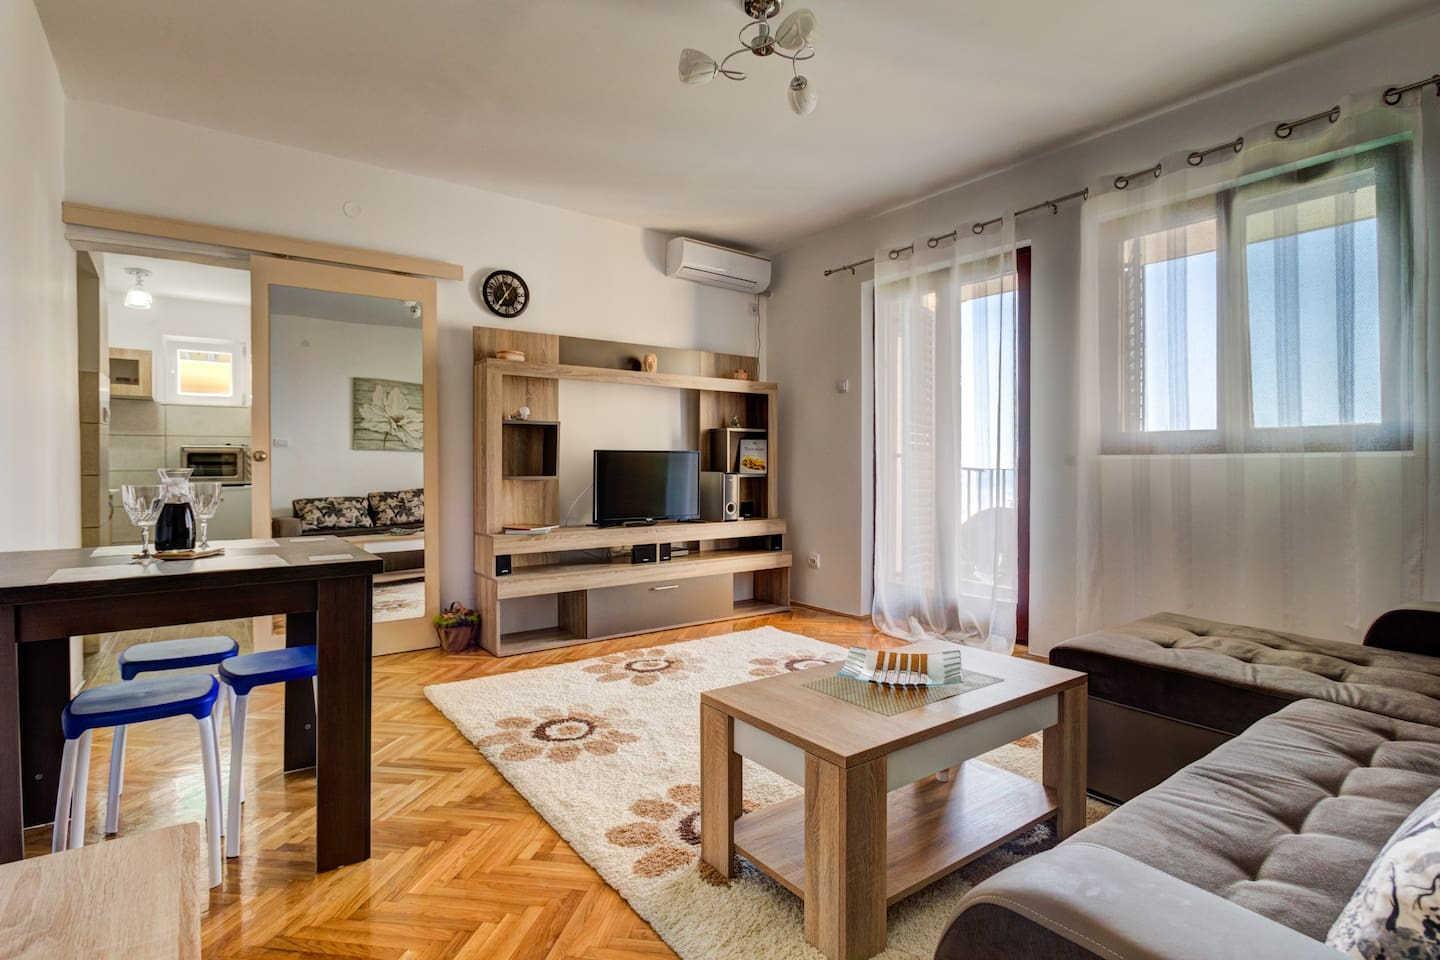 Welcome to Krdzic apartments, a place to relax near the beach and within easy reach to nearby Budva and Sveti Stefan . Bright and modern living room opens to a small terrace from where you can enjoy the sea view and view of surrounding Becici area.